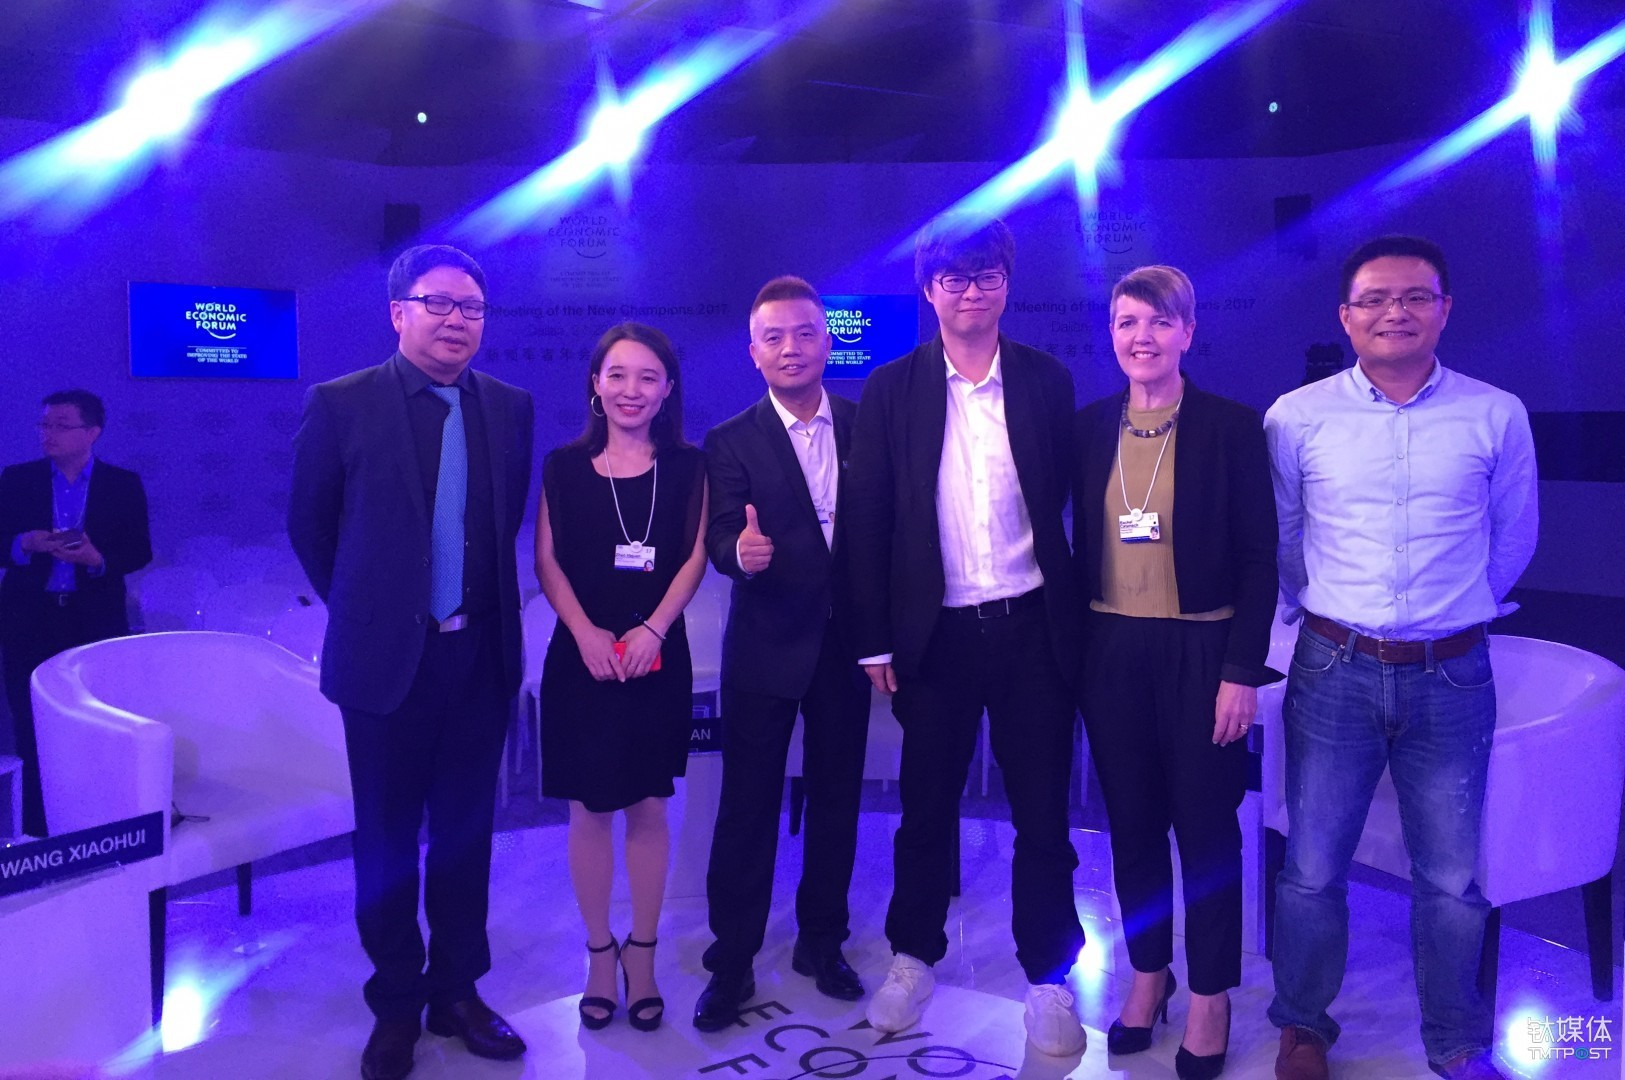 From left to right: Wu Bofan, president of Beijing Bofanstime Media Co., Ltd, Zhao Hejuan, founder and CEO of TMTPost, Wang Xiaohui, Chief Content Officer of iQiyi, Ying Shuling, CEO of Yingxiong Entertainment, Rachel Catanach, president of Fleishman Hillard's China operations and Zhang Chi, vice president of China Cultural Industry Fund.